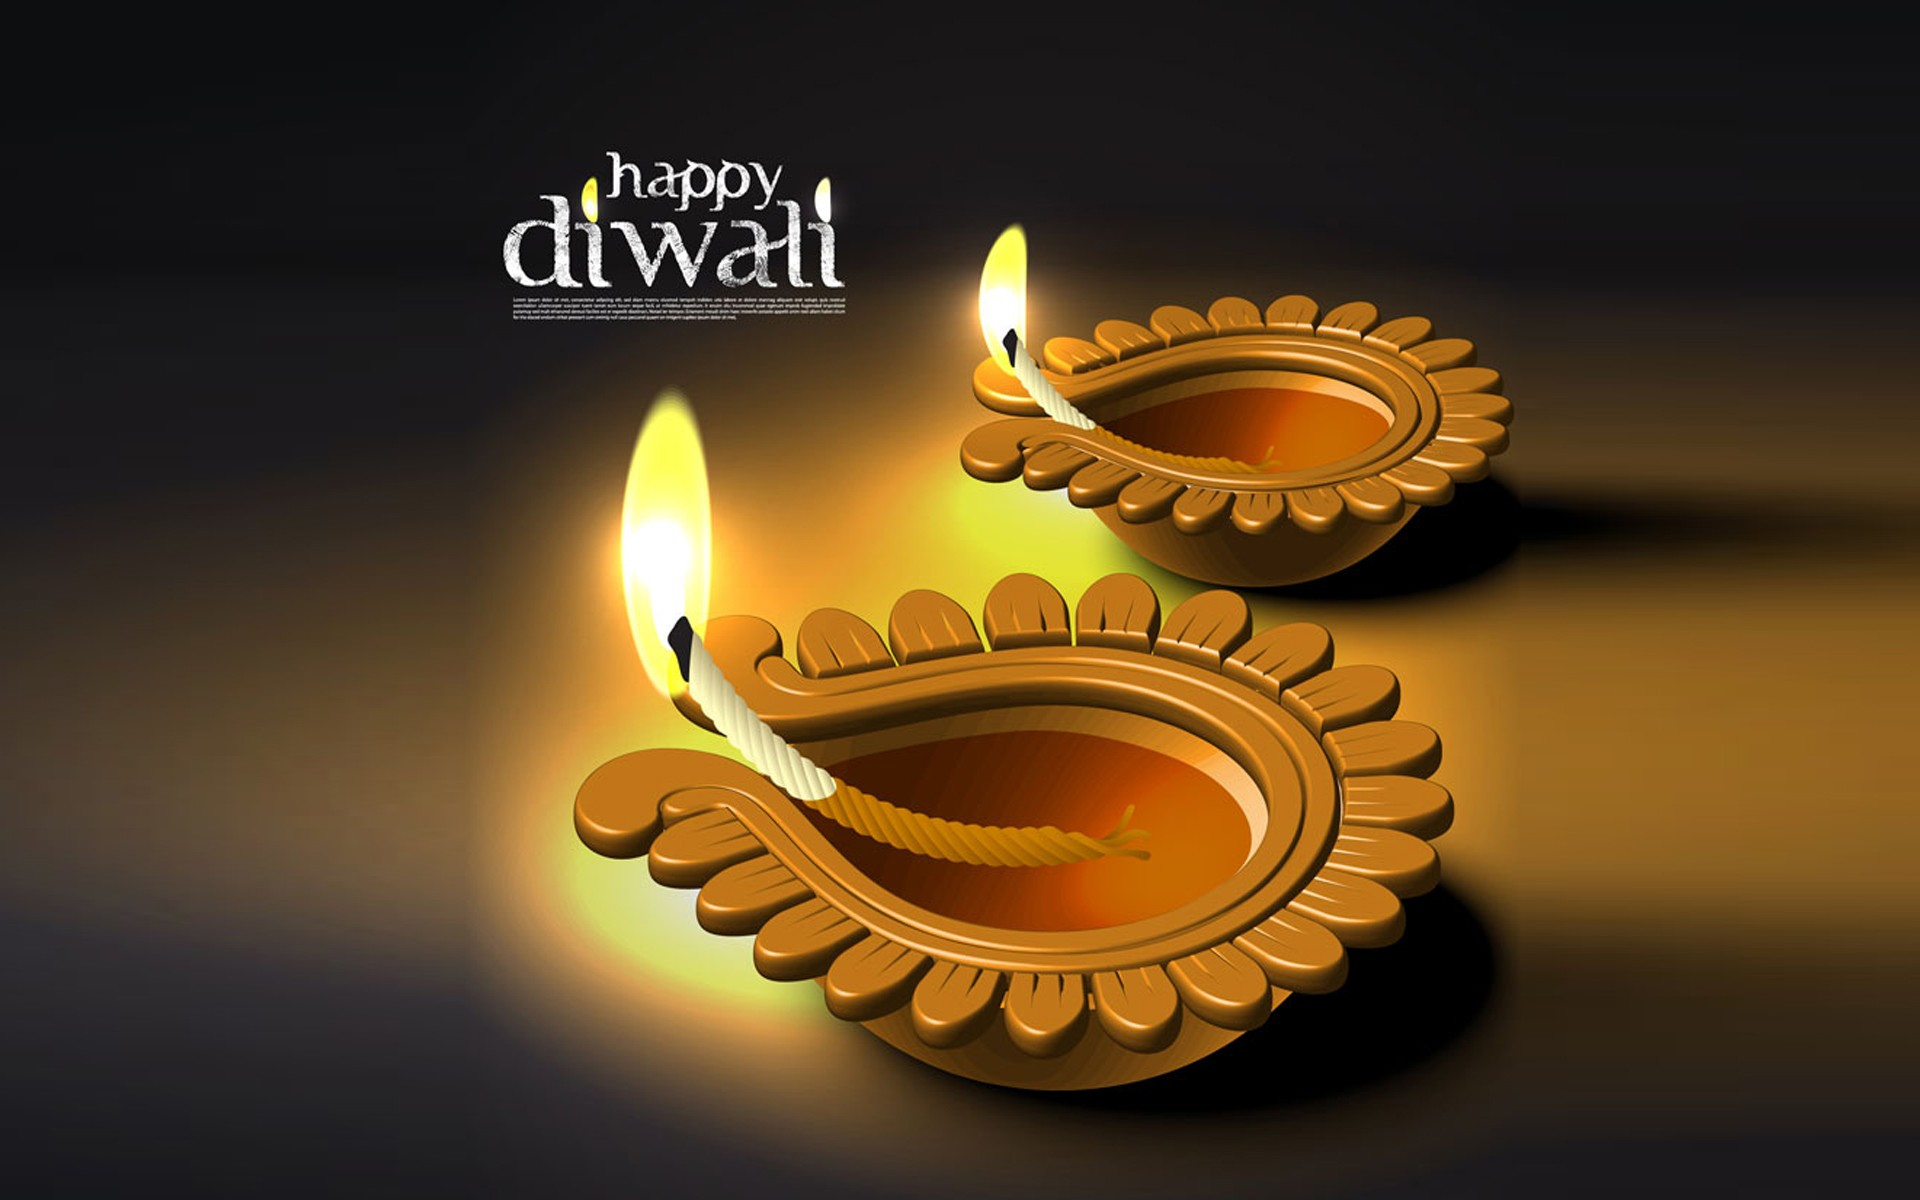 Diwali Wishes Quotes Wallpapers Download Download Diwali Festival Wallpaper Image Gallery